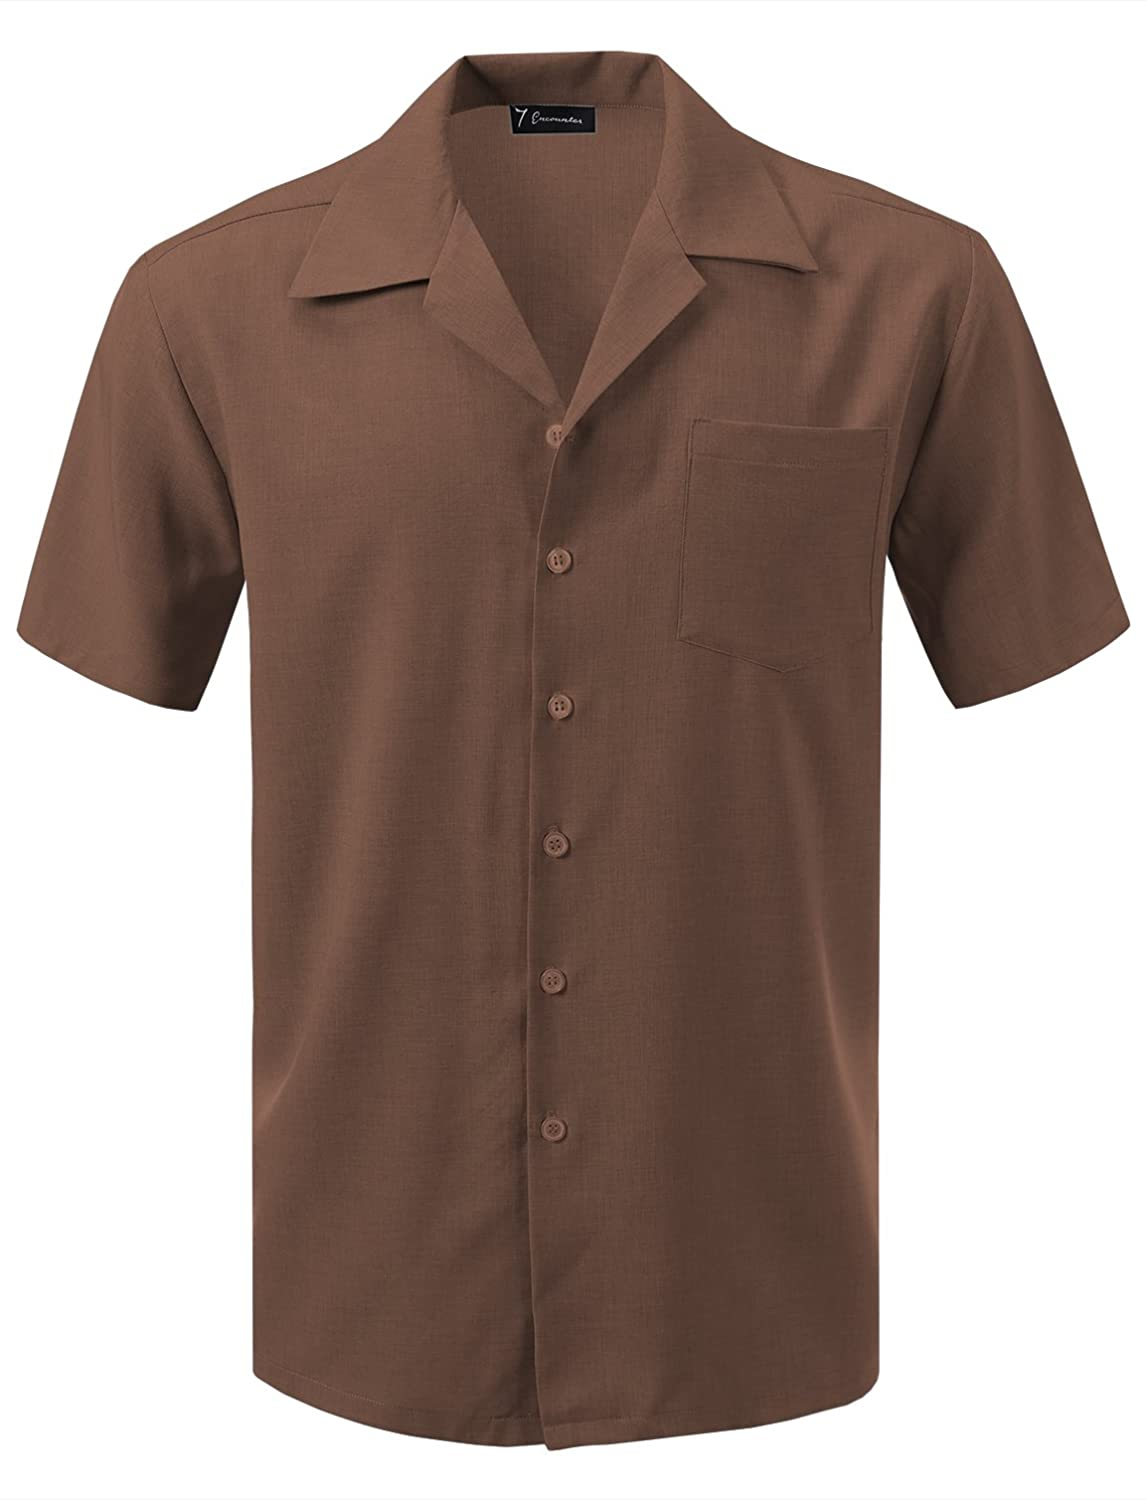 Retro Clothing for Men | Vintage Men's Fashion 7 Encounter Mens Camp Dress Shirt $29.99 AT vintagedancer.com